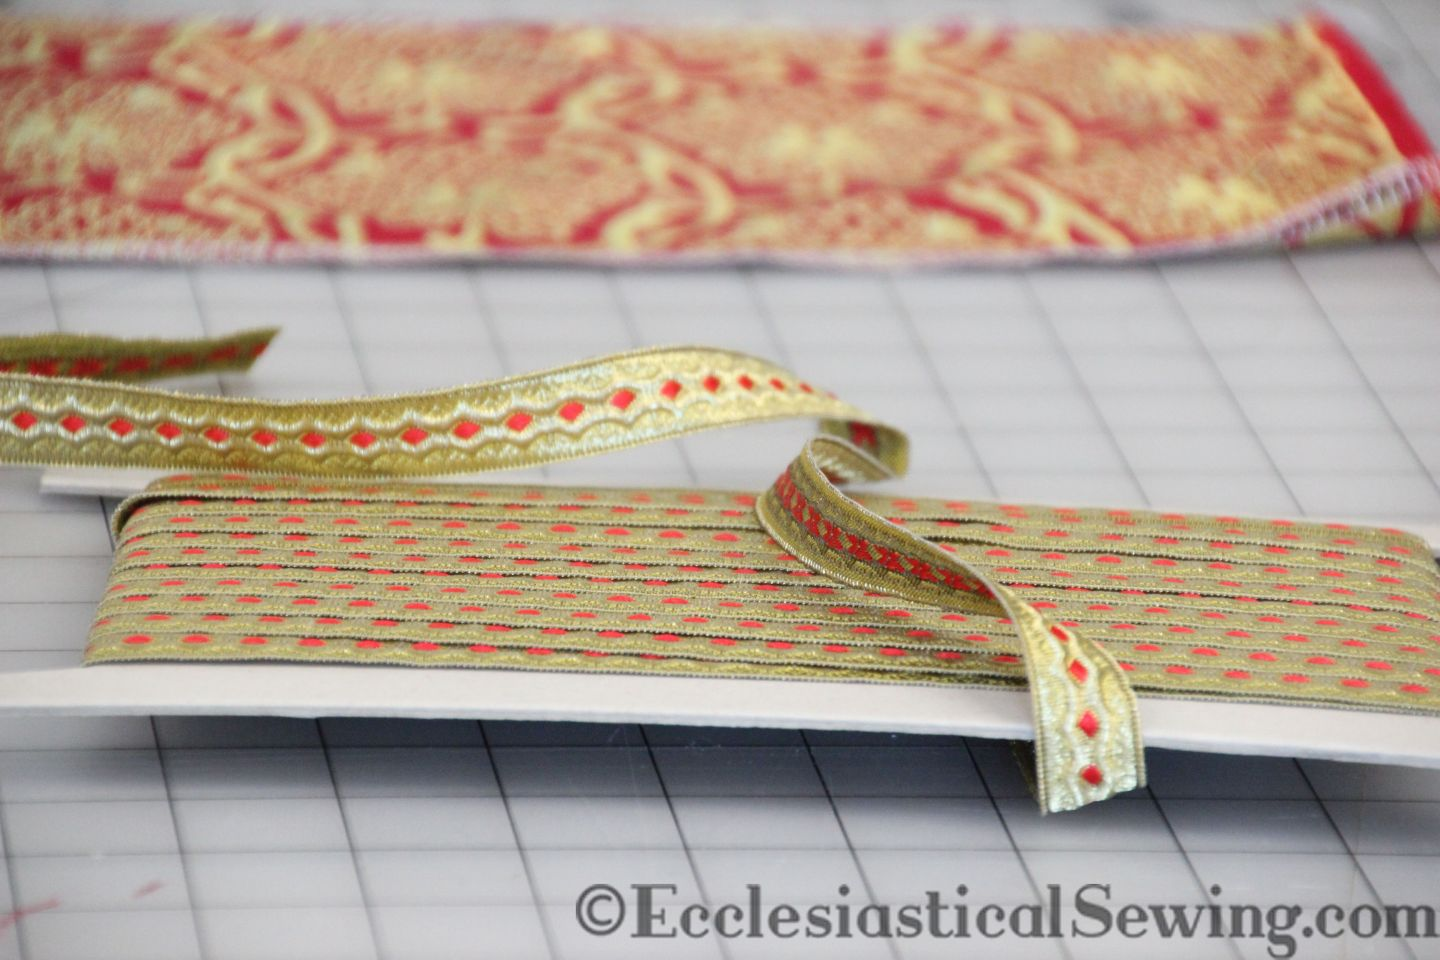 Narrow Trim orphrey bands church vestments liturgical brocade Religious fabric Chasuble orphrey bands Ecclesiastical Sewing